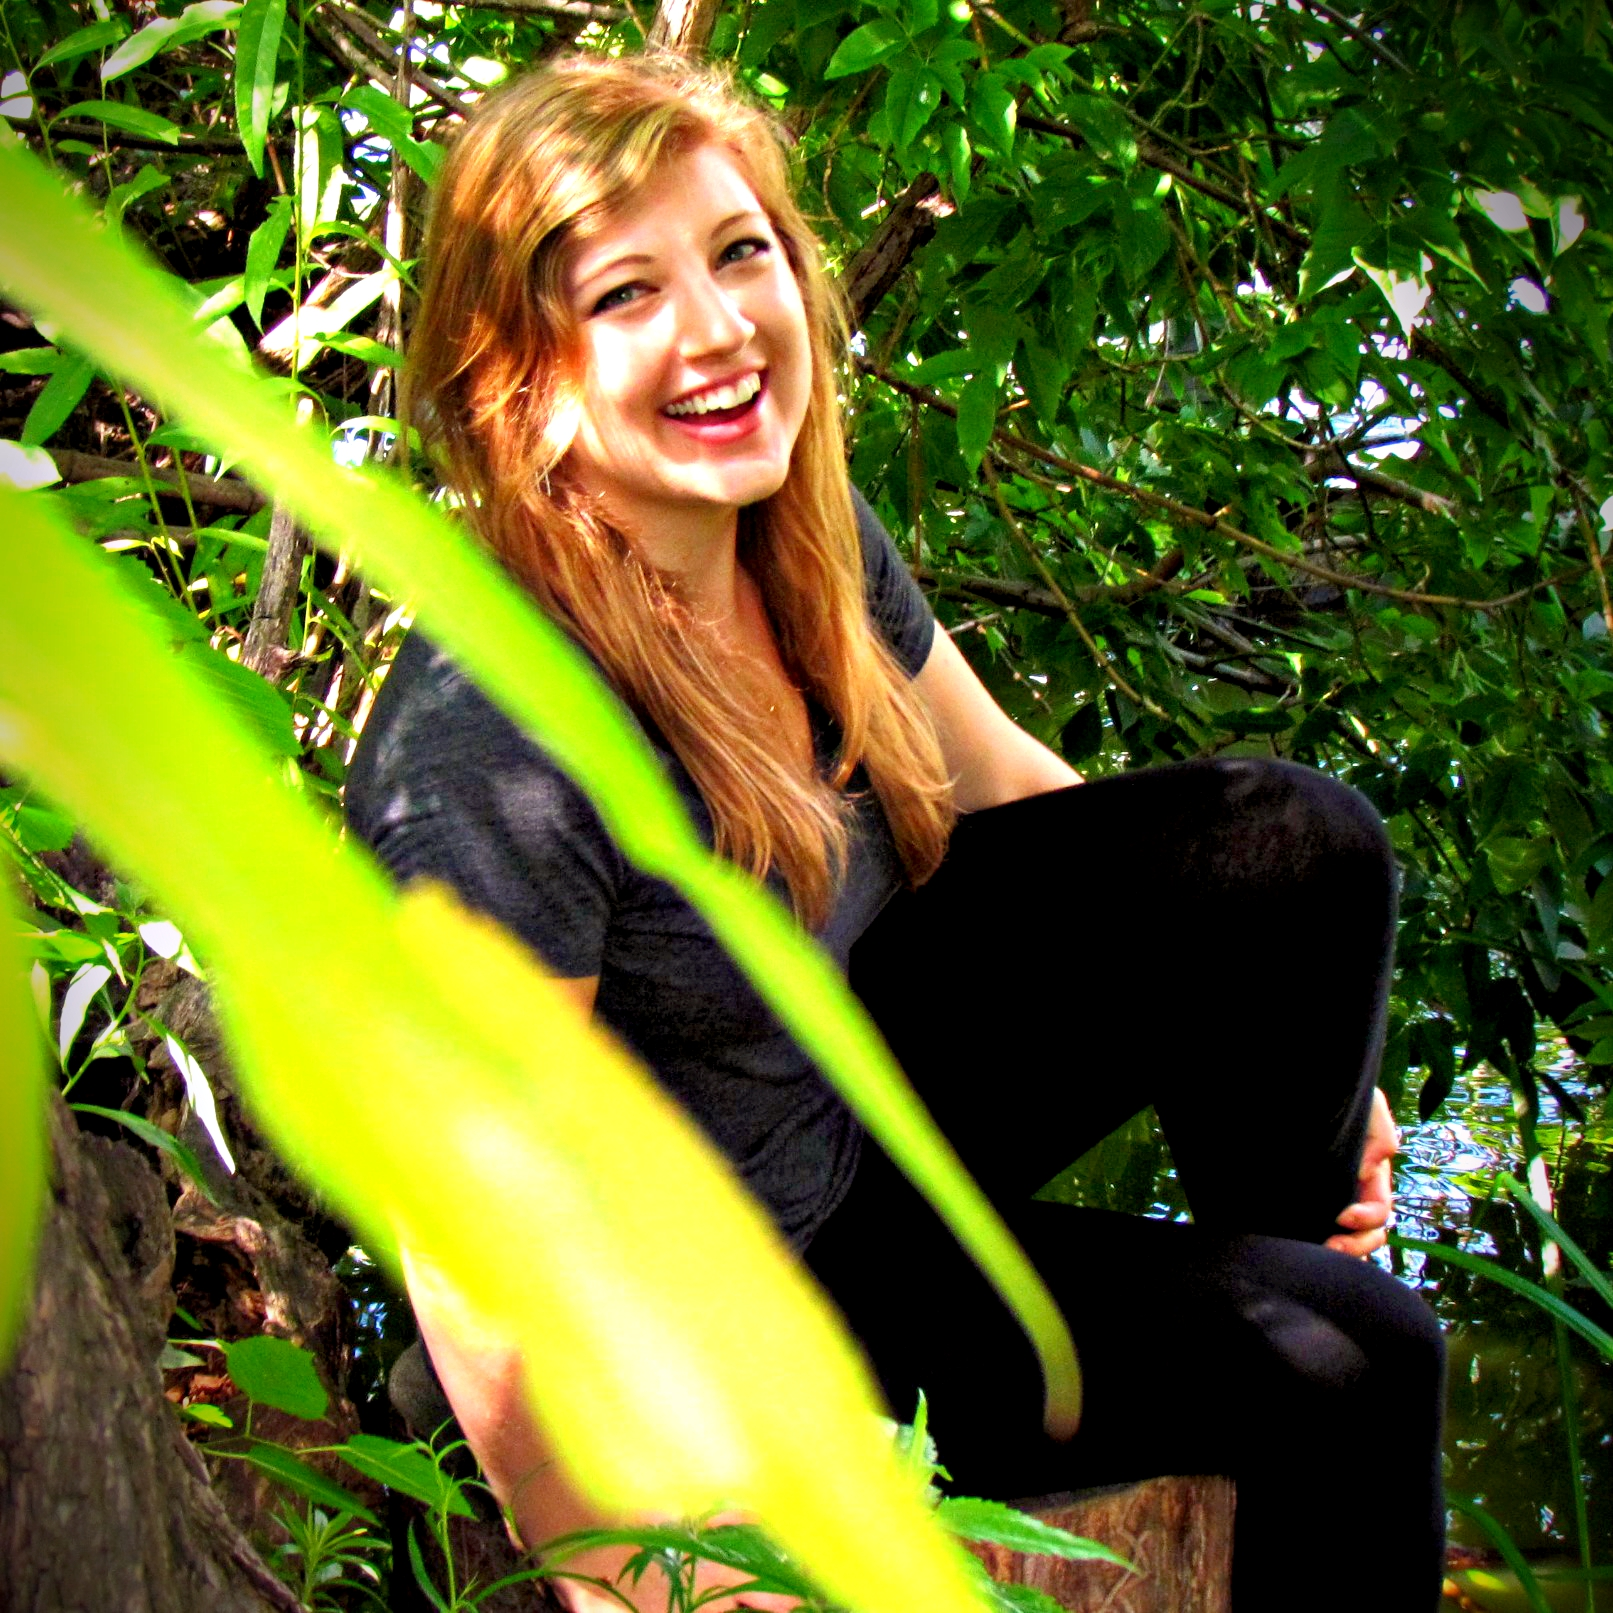 Shelby Forsythia Laughing